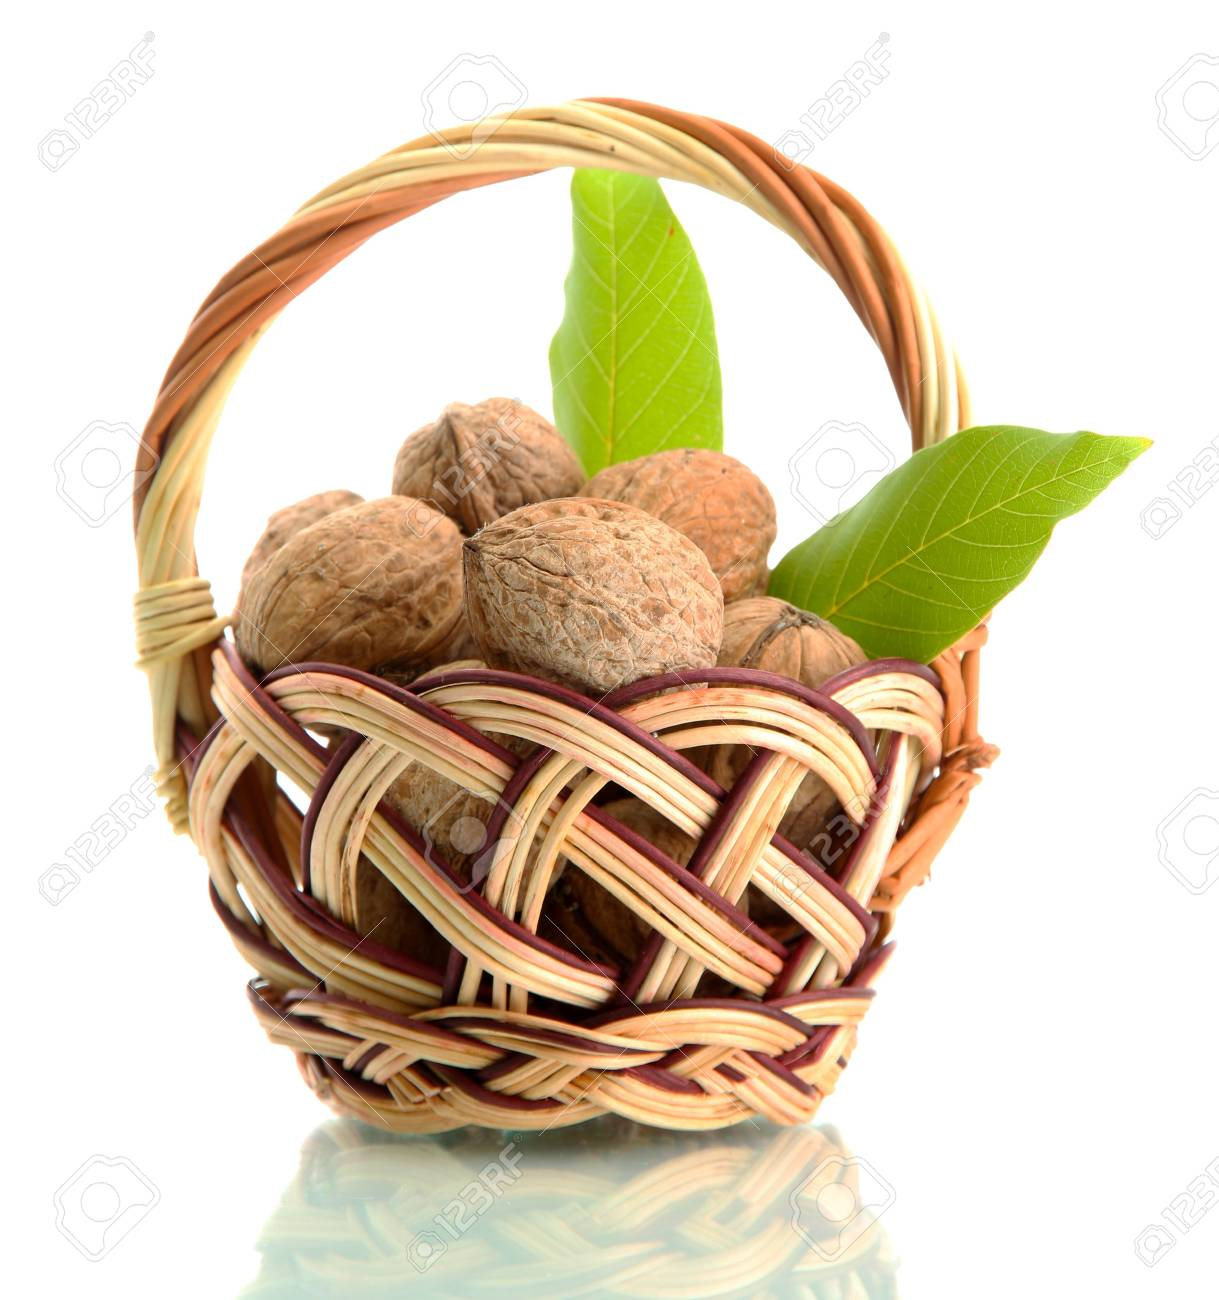 walnuts with green leaves in basket, isolated on white Stock Photo - 15546188